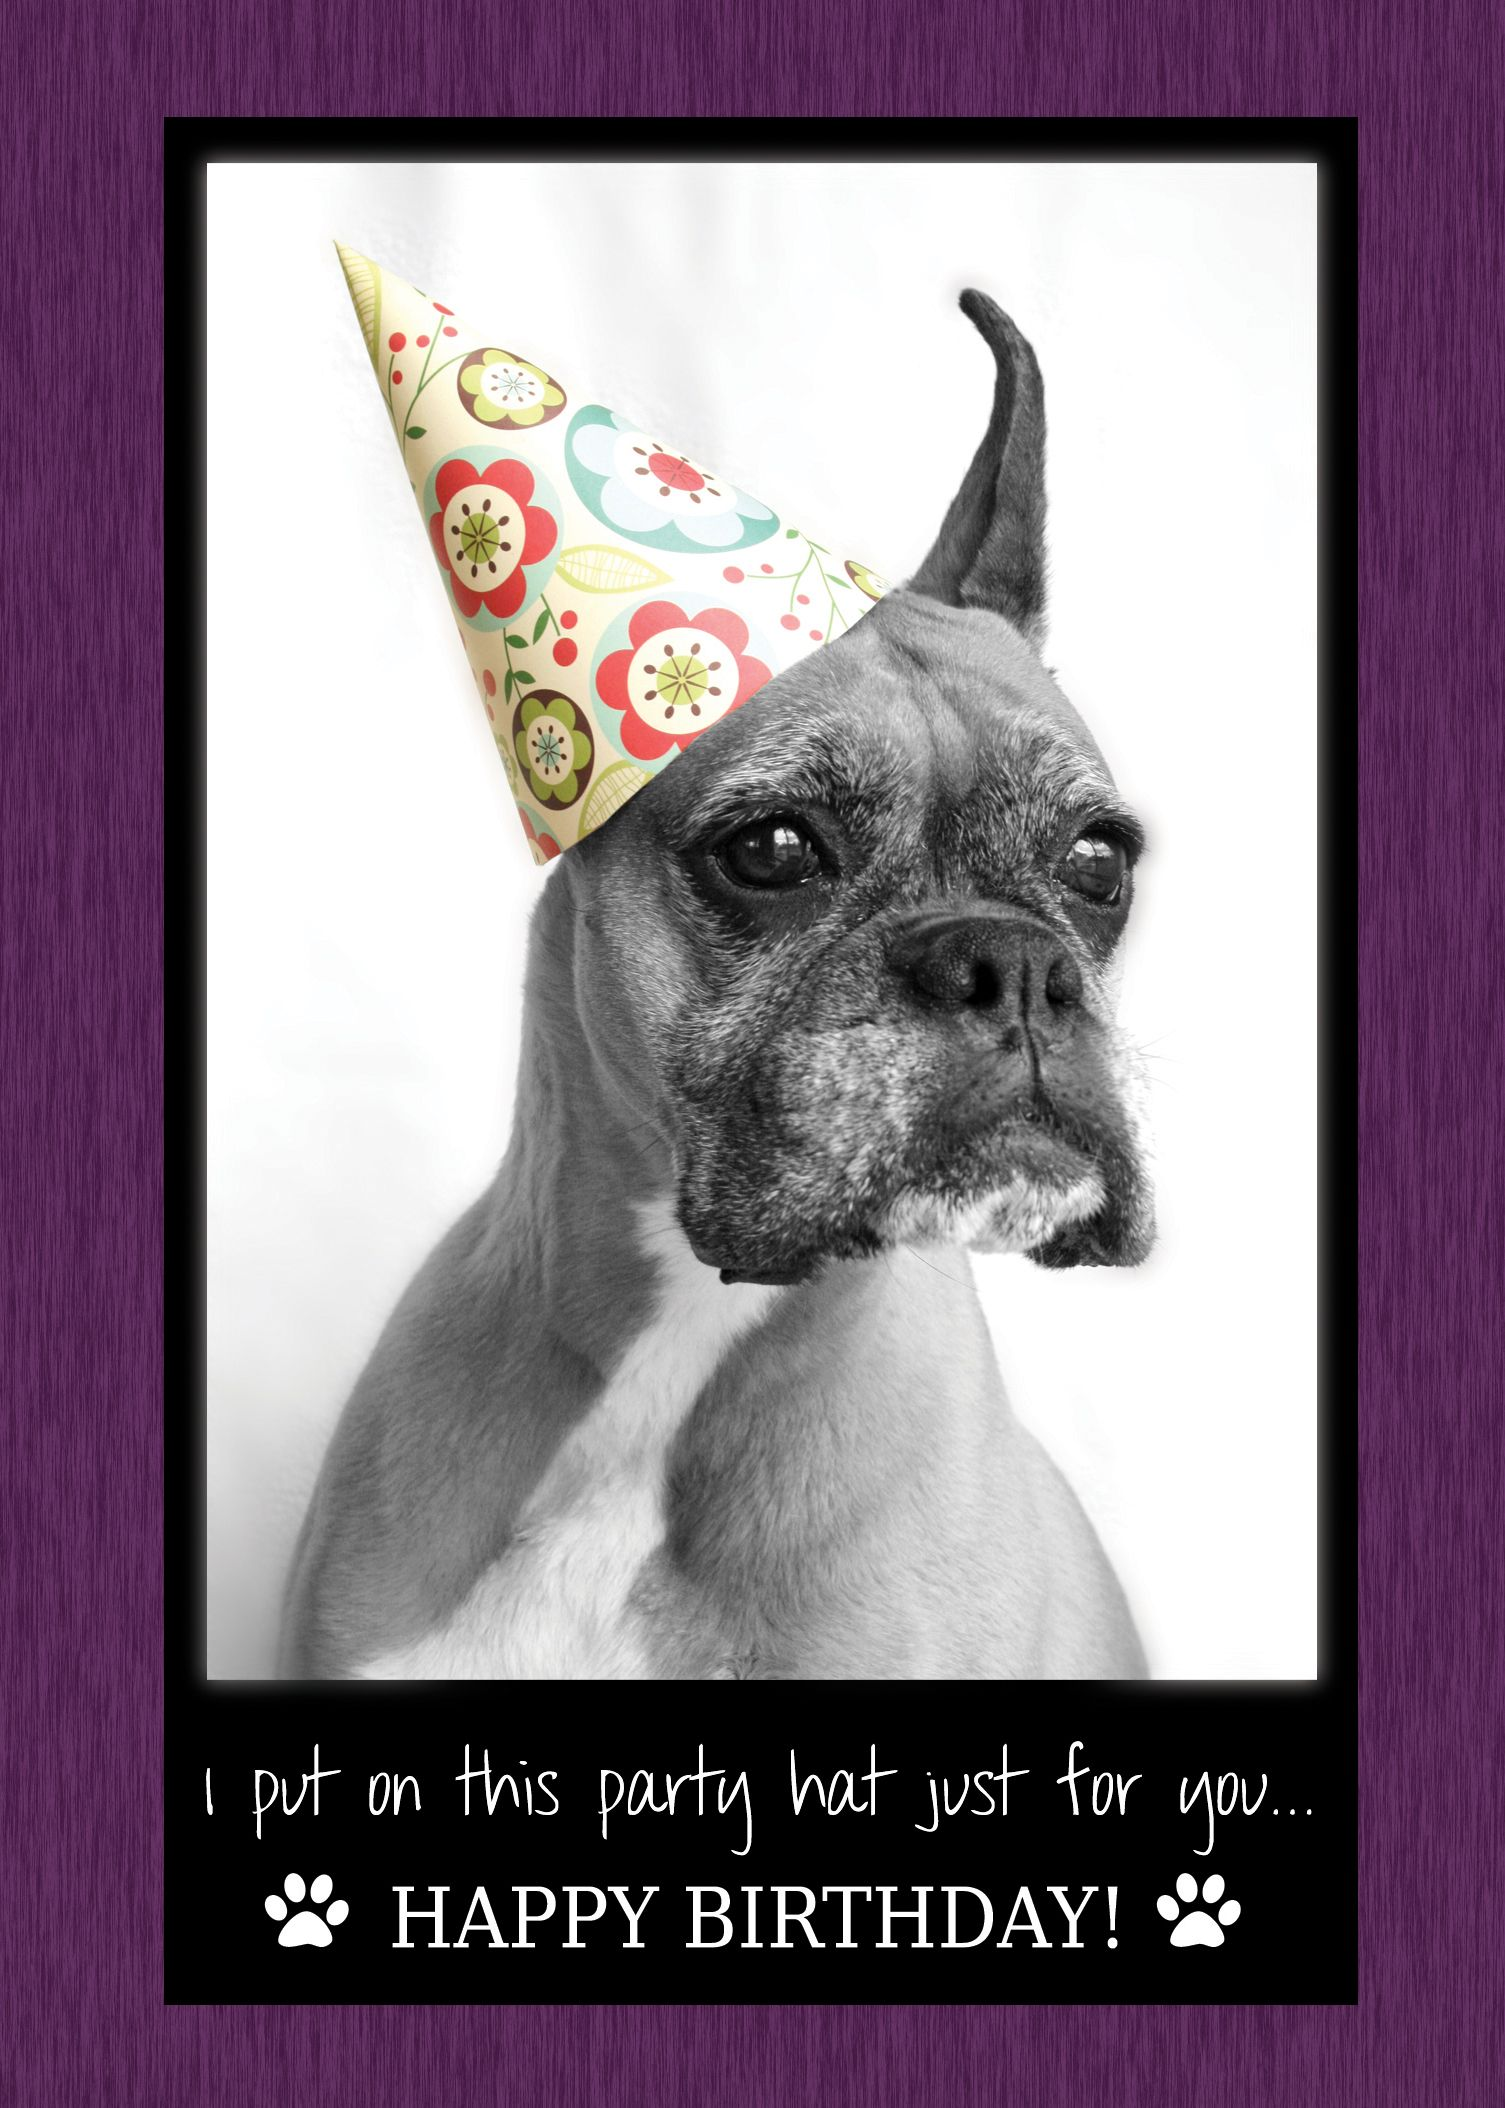 I put on this party hat just for you... Happy Birthday